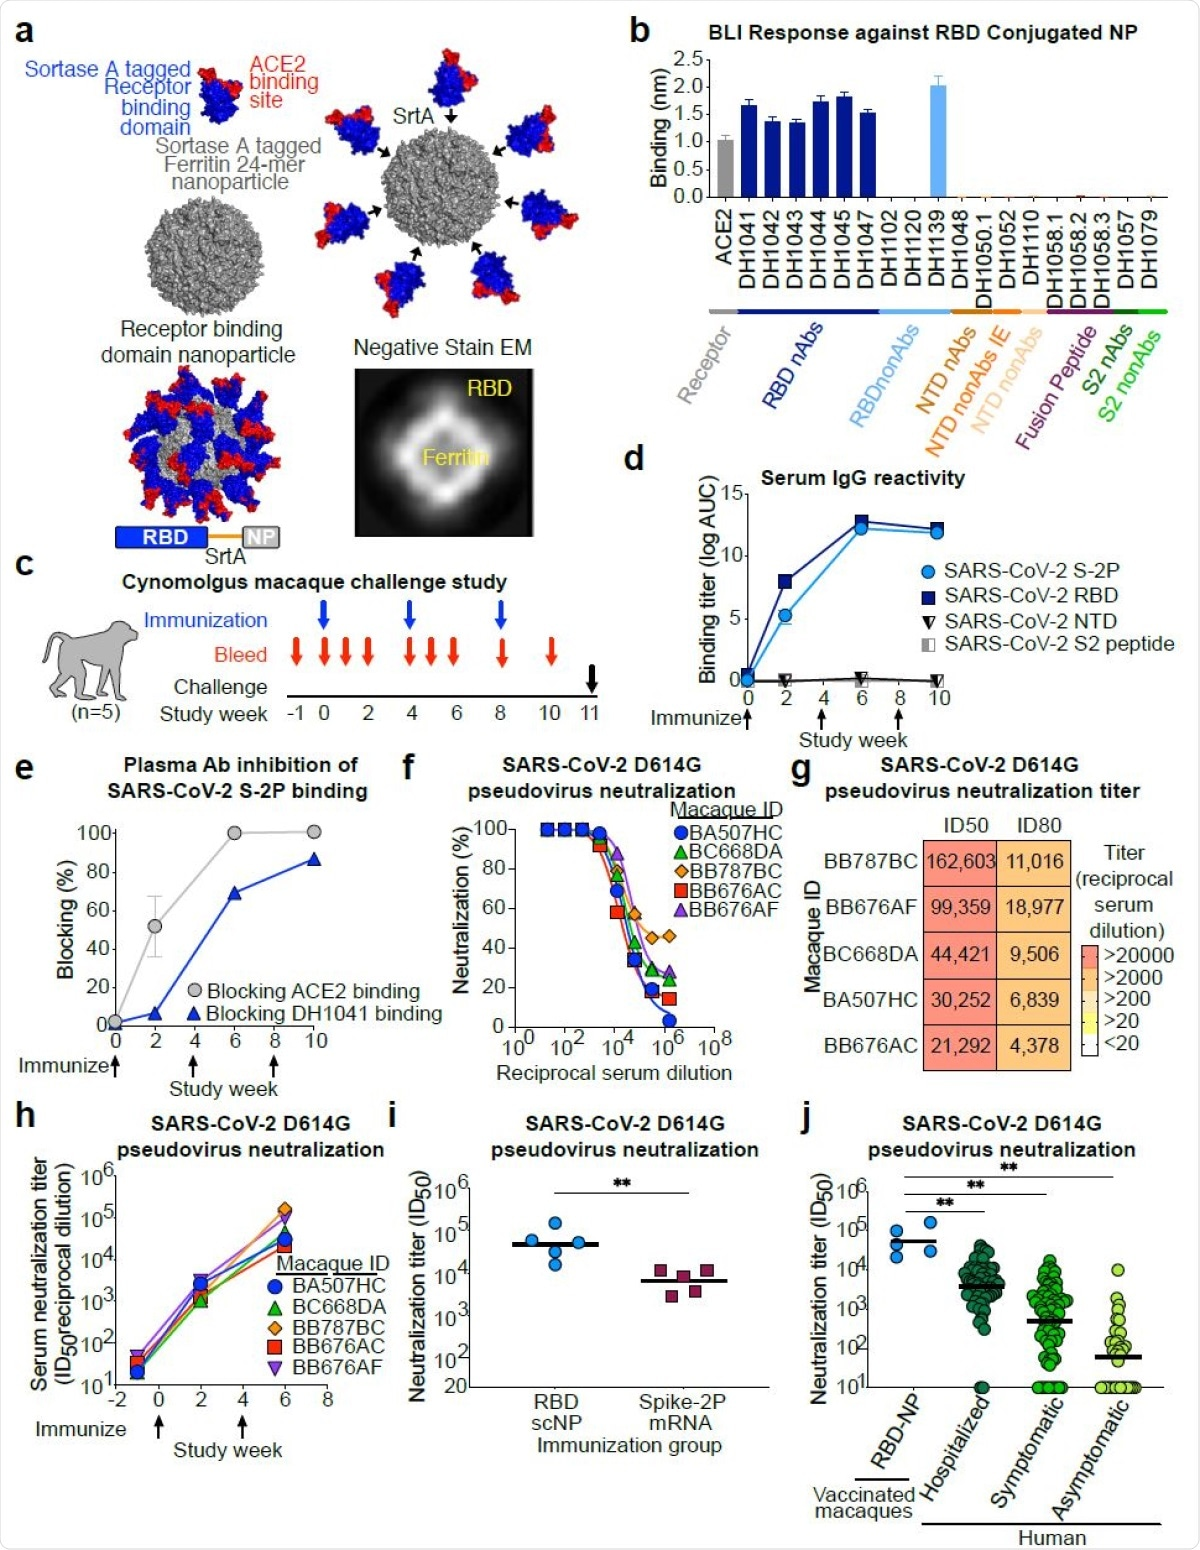 SARS-CoV-2 receptor binding domain (RBD) sortase conjugated nanoparticles (scNPs) elicits extremely high titers of SARS-CoV-2 pseudovirus neutralizing antibodies. a. SARS-CoV-2 RBD nanoparticles were constructed by expressing RBD with a C-terminal sortase A donor sequence (blue and red) and a Helicobacter pylori ferritin nanoparticle with N737 terminal sortase A acceptor sequences (gray) on each subunit (top left). The RBD is shown in blue with the ACE2 binding site in red. The RBD was conjugated to nanoparticles by a sortase A (SrtA) enzyme conjugation reaction (top right). The resultant nanoparticle is modeled on the bottom left. Nine amino acid sortase linker is shown in orange. Two dimensional class averages of negative stain electron microscopy images of actual RBD nanoparticles are shown on the bottom right. b. Antigenicity of RBD nanoparticles determined by biolayer interferometry against a panel of SARS-CoV-2 antibodies and the ACE2 receptor. Antibodies are color-coded based on epitope and function. N-terminal domain (NTD), nonAbs IE, infection enhancing non-neutralizing antibody; nAb, neutralizing antibody; nonAb, non-neutralizing antibody. Mean and standard error from 3 independent experiments are shown. c. Cynomolgus macaque challenge study scheme. Blue arrows indicate 748 RBD-NP immunization timepoints. Intranasal/intratracheal SARS-CoV-2 challenge is indicated at week 10. d. Macaque serum IgG binding determined by ELISA to recombinant SARS-CoV-2 stabilized Spike ectodomain (S-2P), RBD, NTD, and Fusion peptide (FP). Binding titer is shown as area752under-the curve of the log10-transformed curve. Arrows indicate immunization timepoints. e. Plasma antibody blocking of SARS-CoV-2 S-2P binding to ACE2-Fc and RBD neutralizing antibody DH1041. Group mean and standard error are shown. f. Dose-dependent serum neutralization of SARS-COV-2 pseudotyped virus infection of ACE2- expressing 293T cells. Serum was collected after two immunizations. The SARS-CoV-2 pseudo